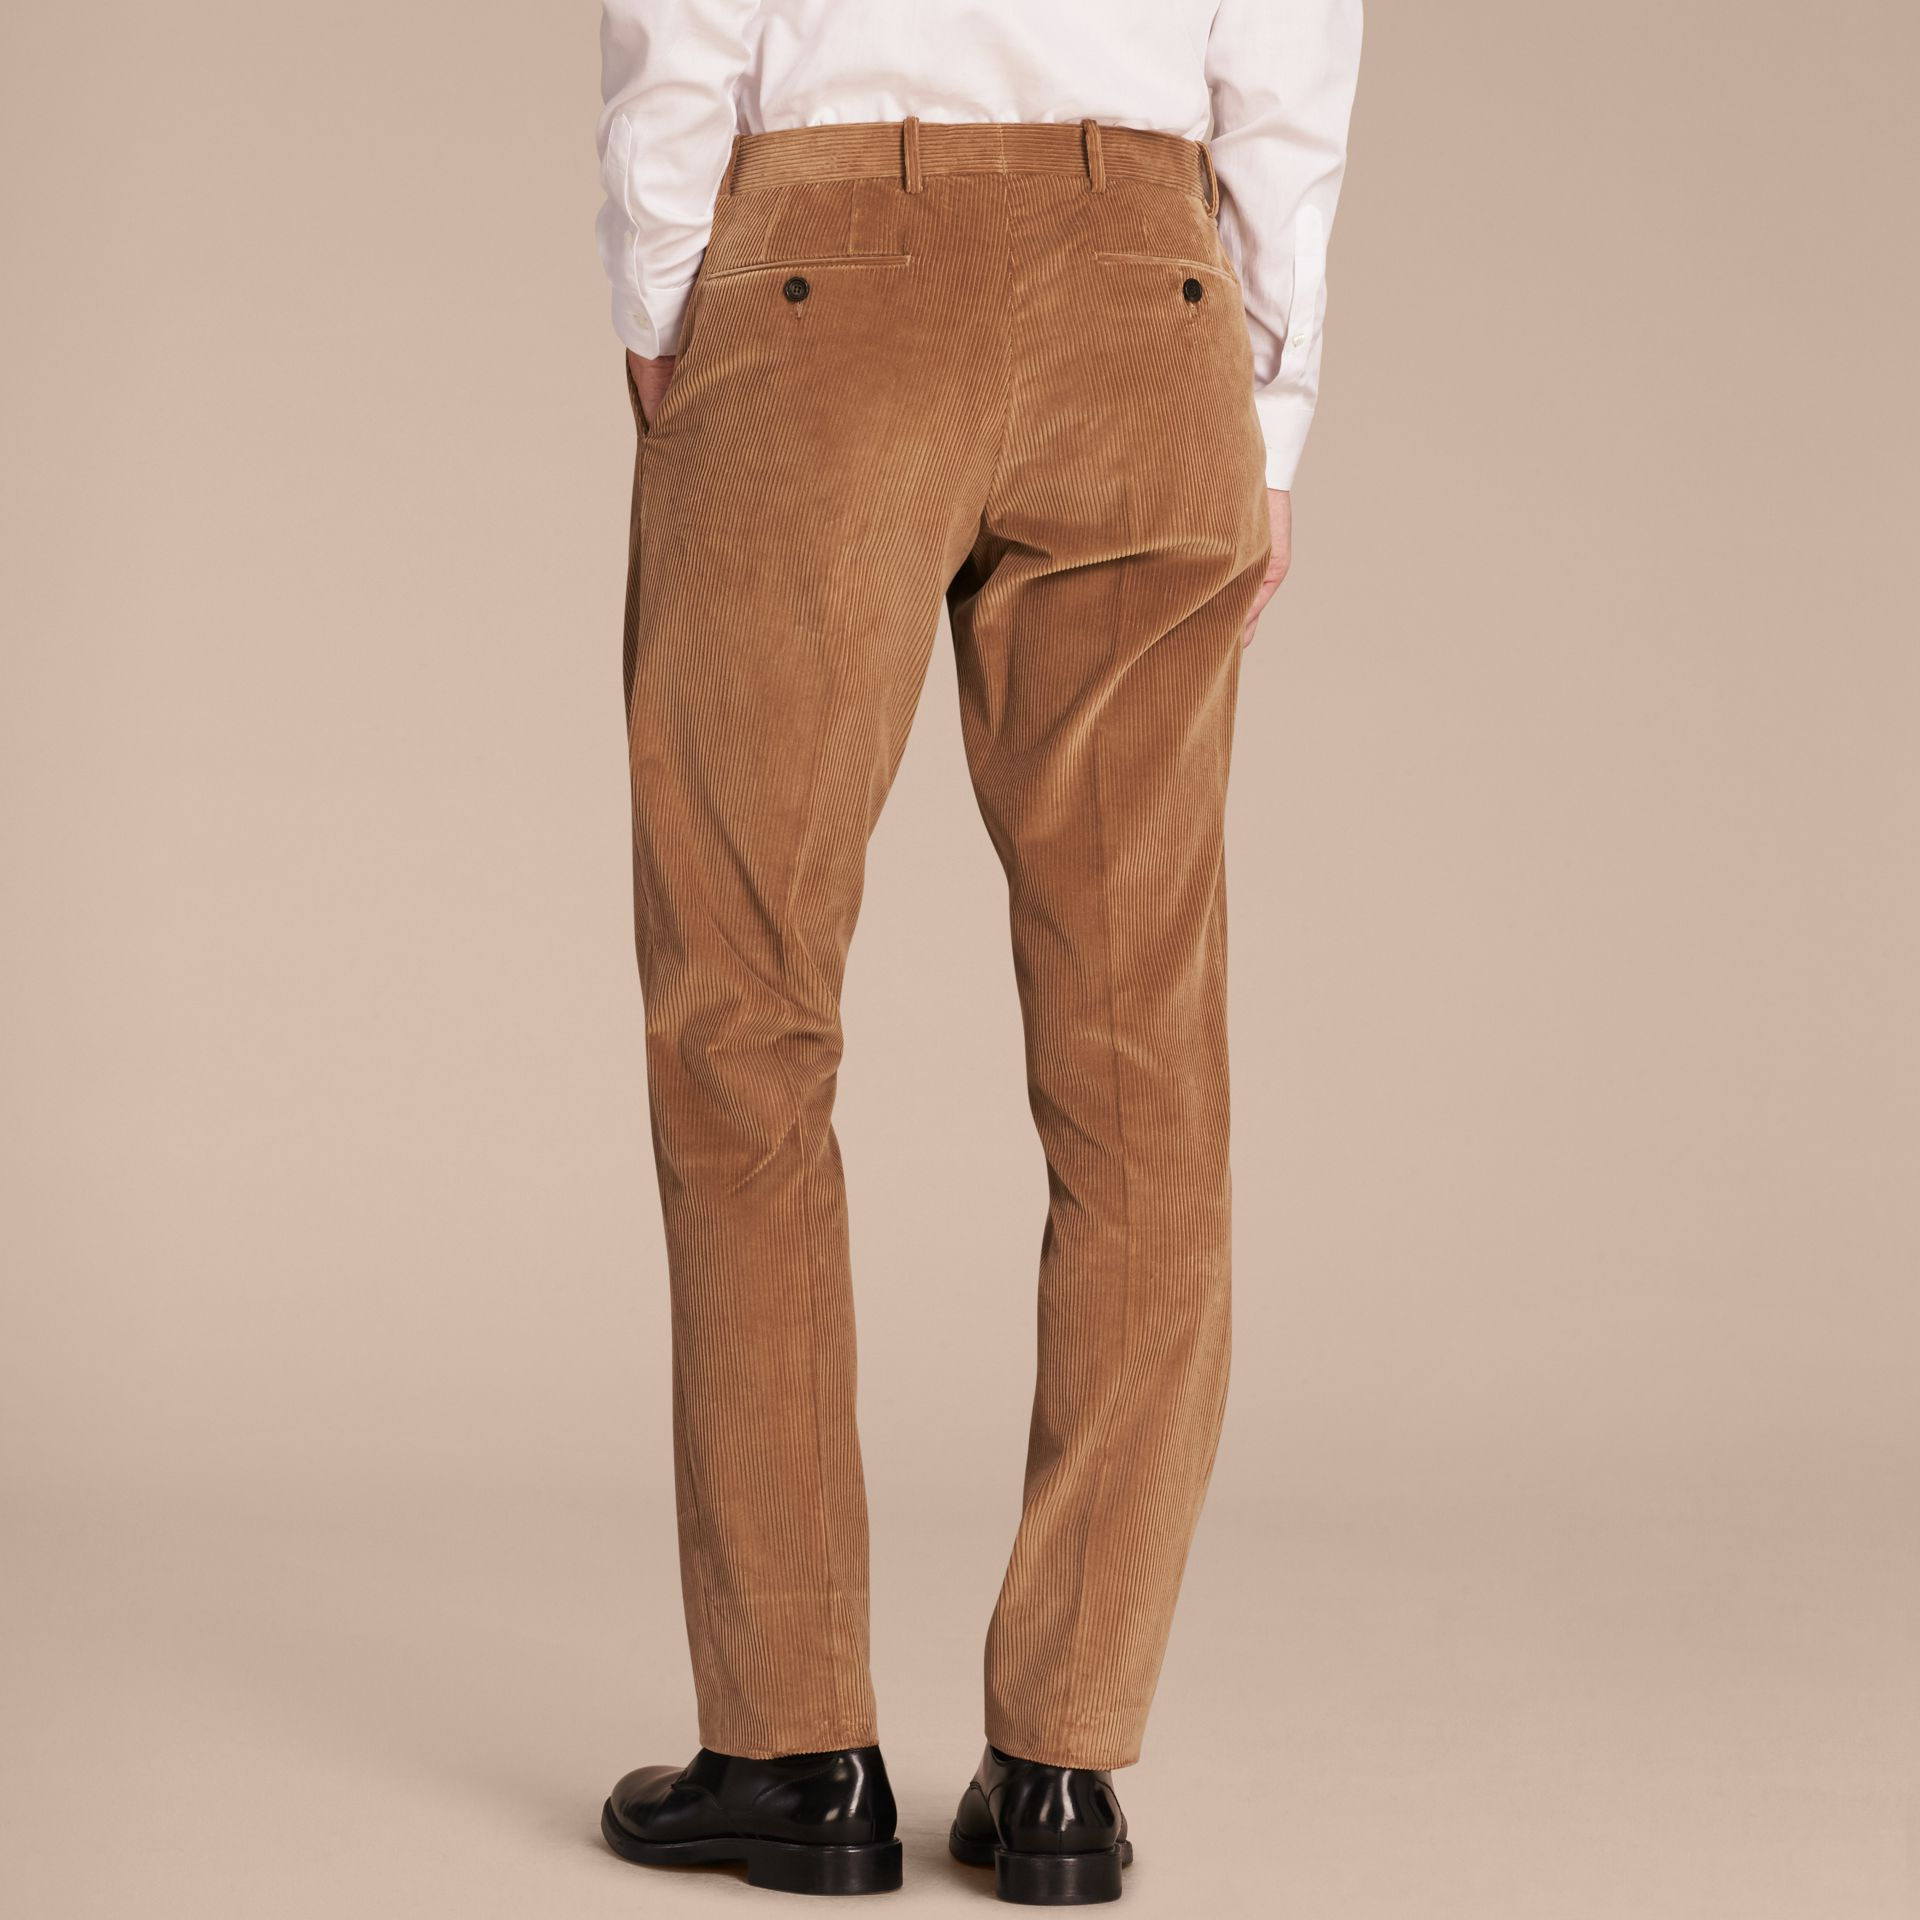 Camel Slim Fit Cotton Corduroy Trousers Camel - gallery image 3